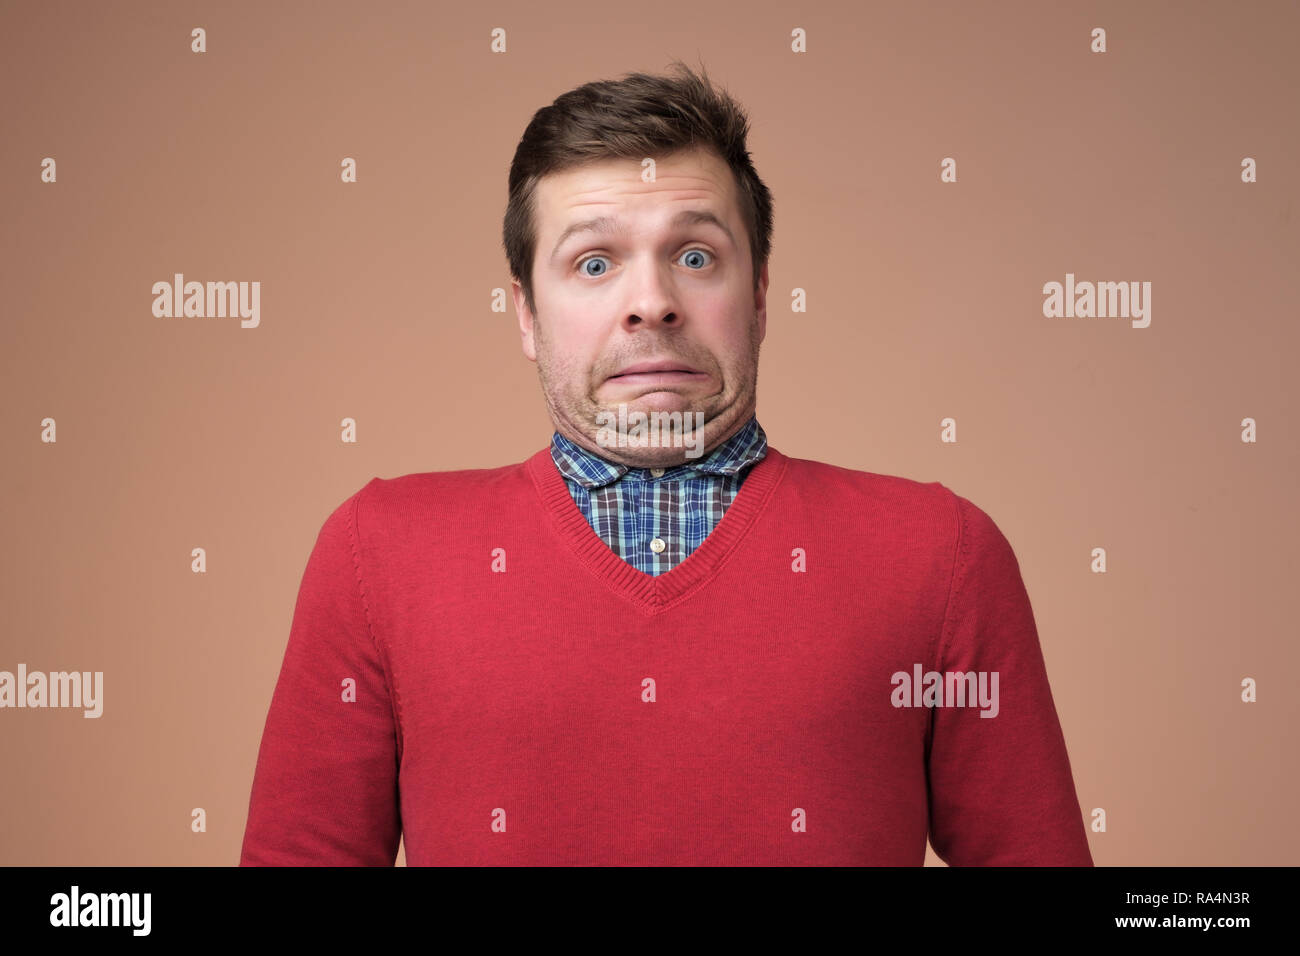 Oops. Funny caucasian man in red sweater grimacing guilty face at studio background - Stock Image